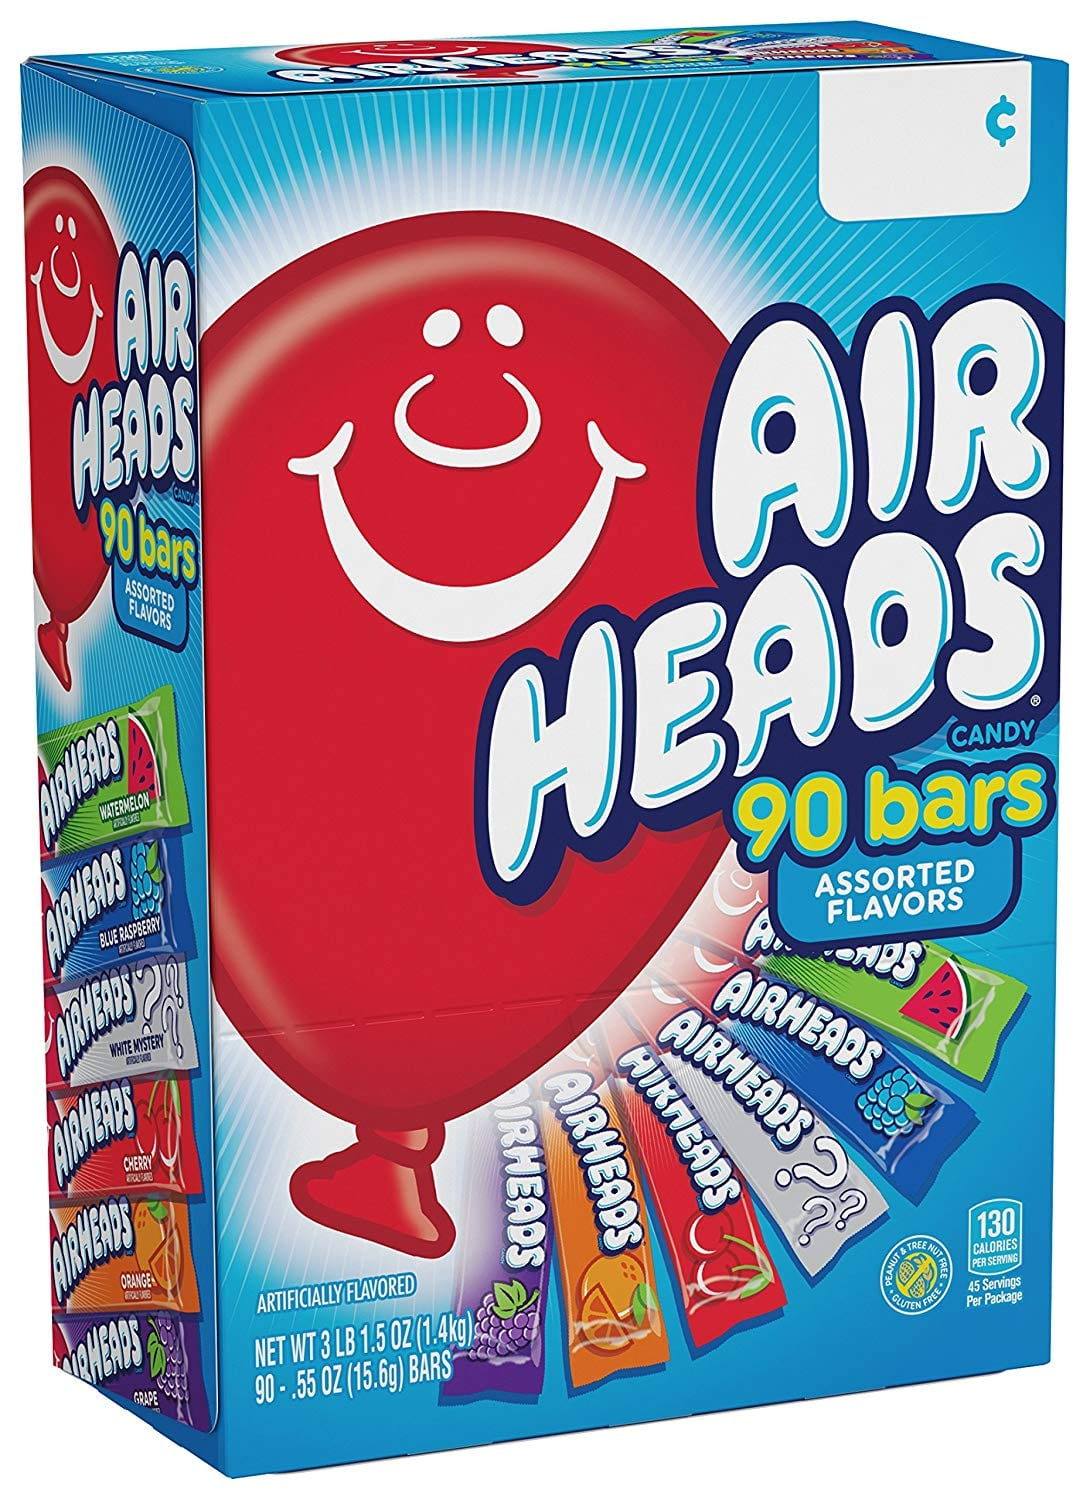 90 count Airheads Bars, Chewy Fruit Taffy Candy, Variety Pack, $7.27 w/ S&S, Amazon